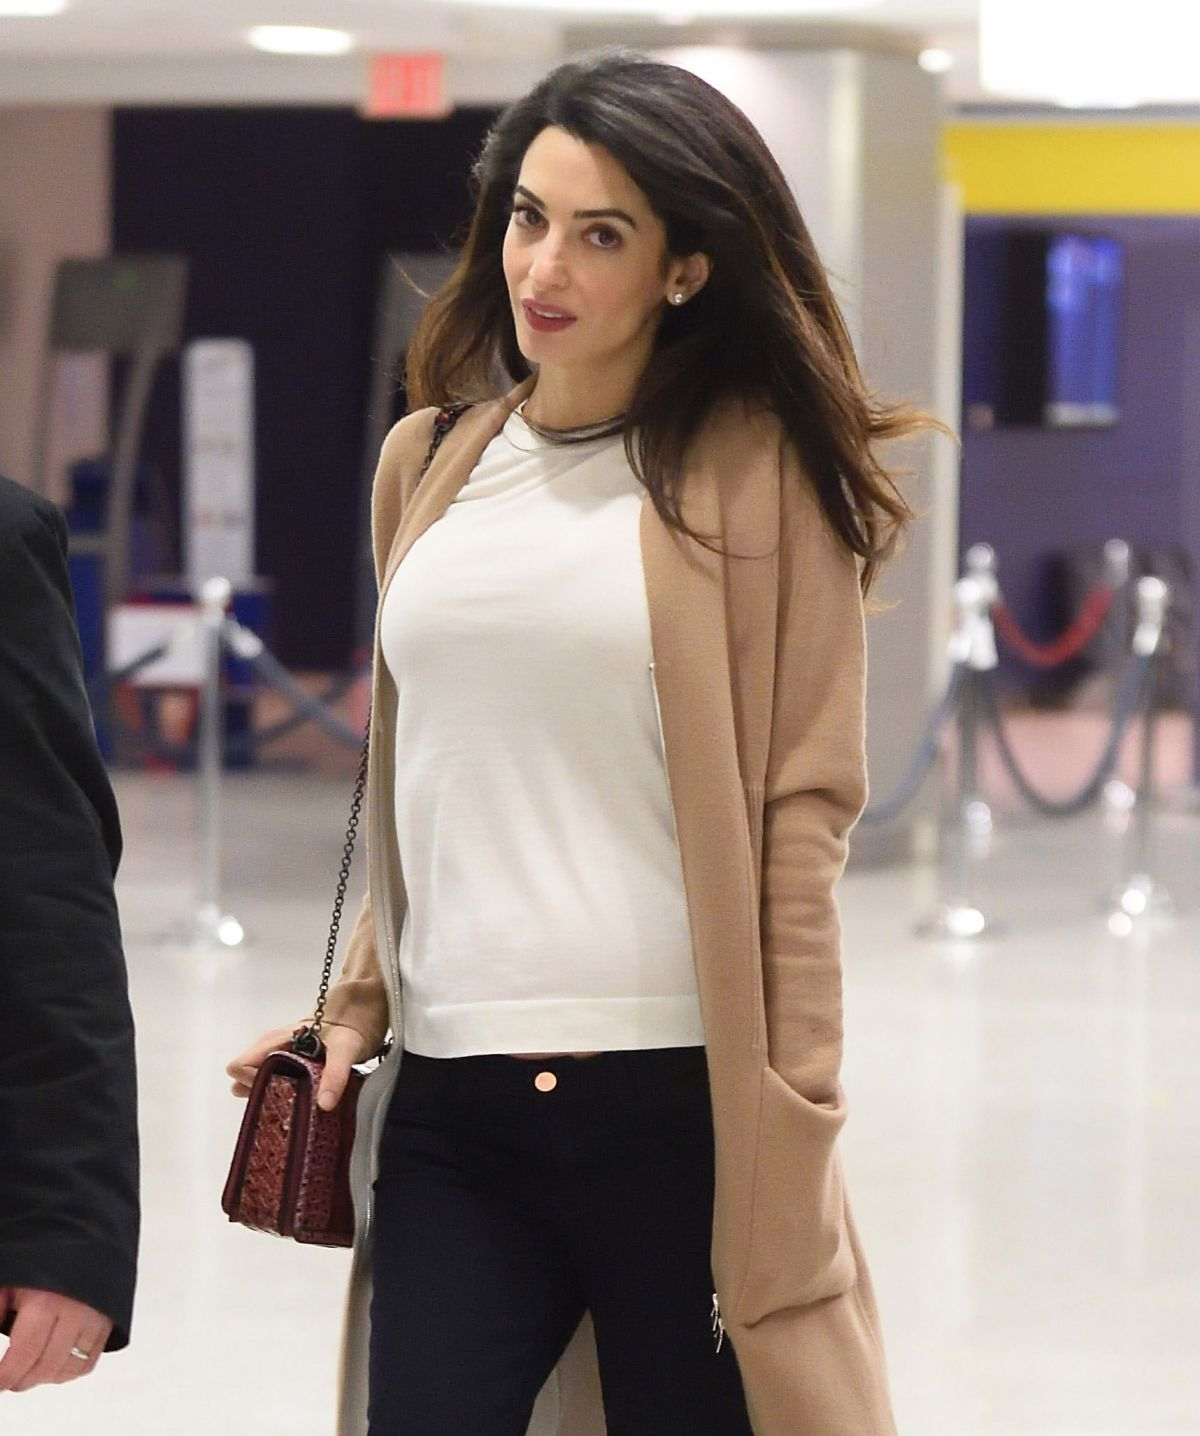 AMAL CLOONEY at JFK Airport in New York 03/11/2017